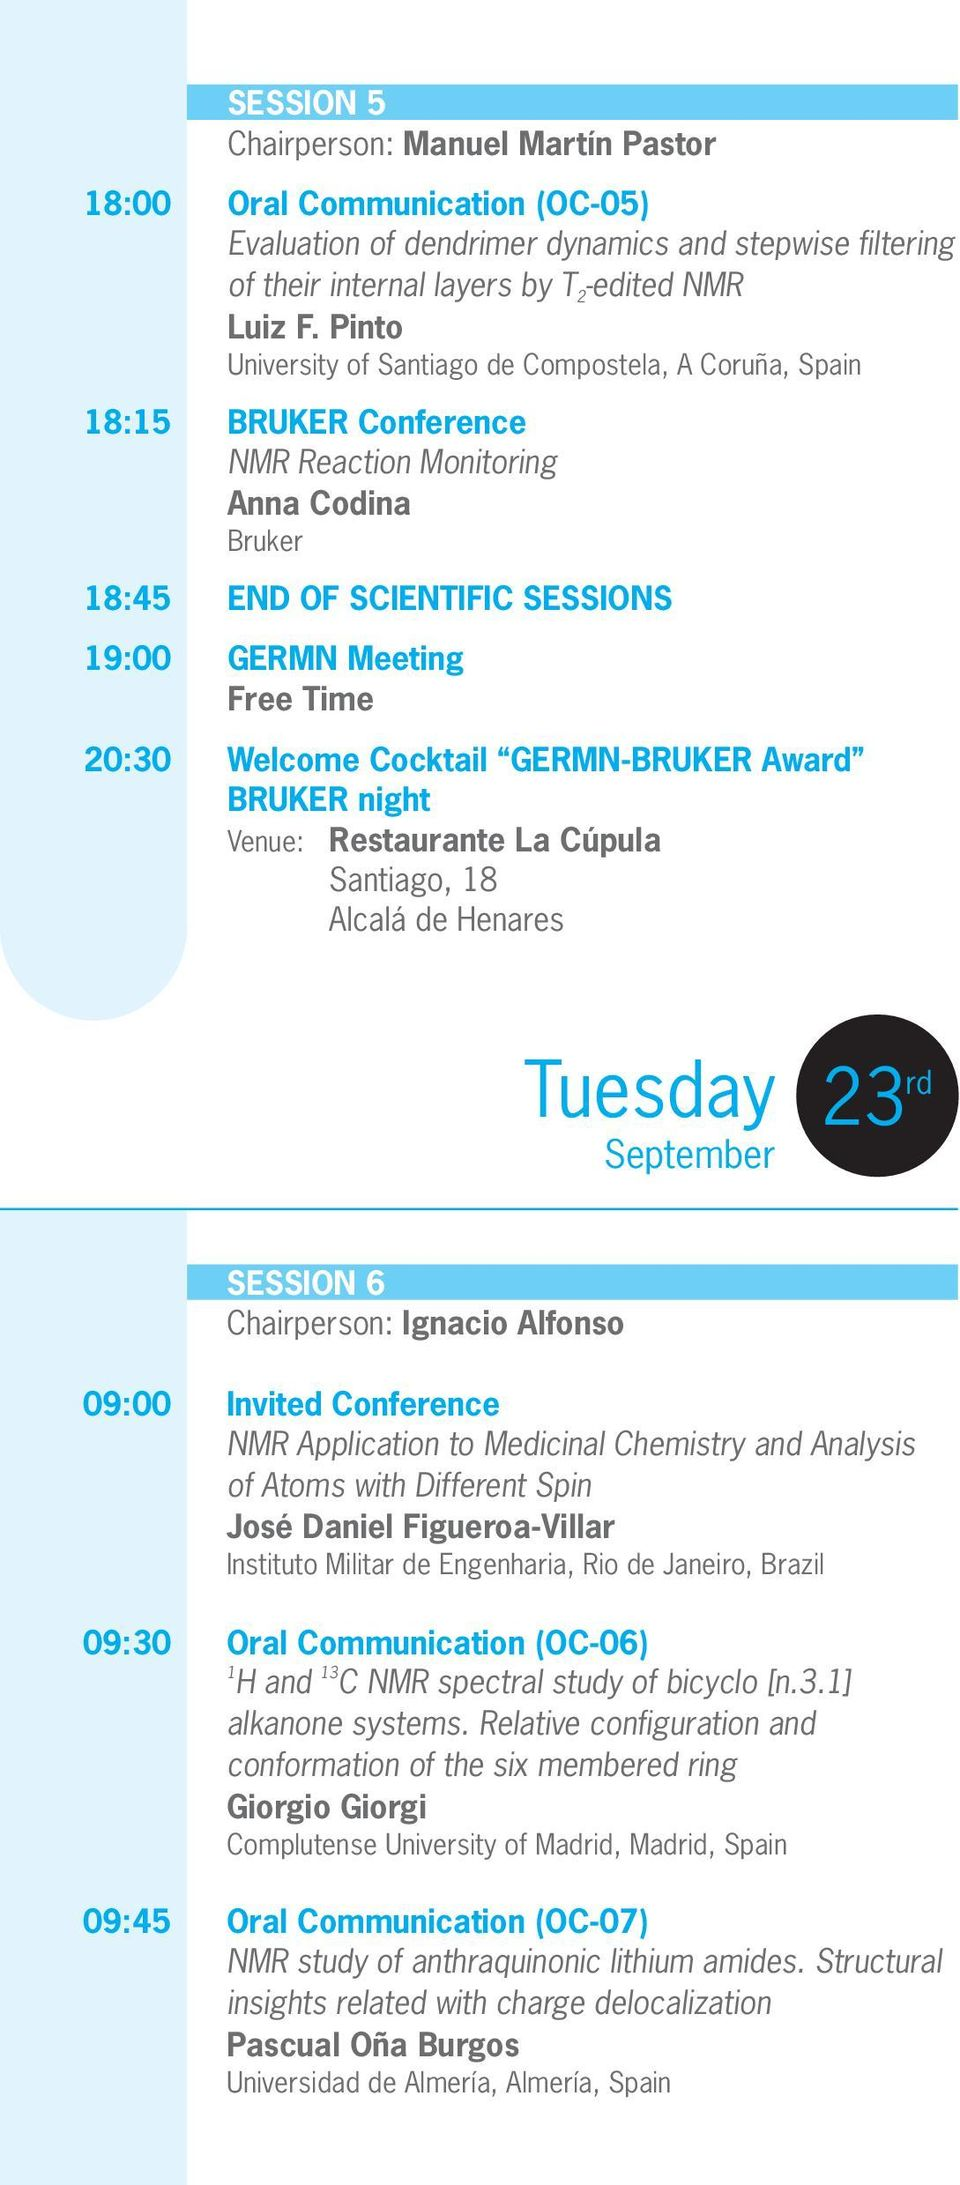 Welcome Cocktail GERMN-BRUKER Award BRUKER night Venue: Restaurante La Cúpula Santiago, 18 Alcalá de Henares Tuesday September 23 rd SESSION 6 Chairperson: Ignacio Alfonso 09:00 Invited Conference